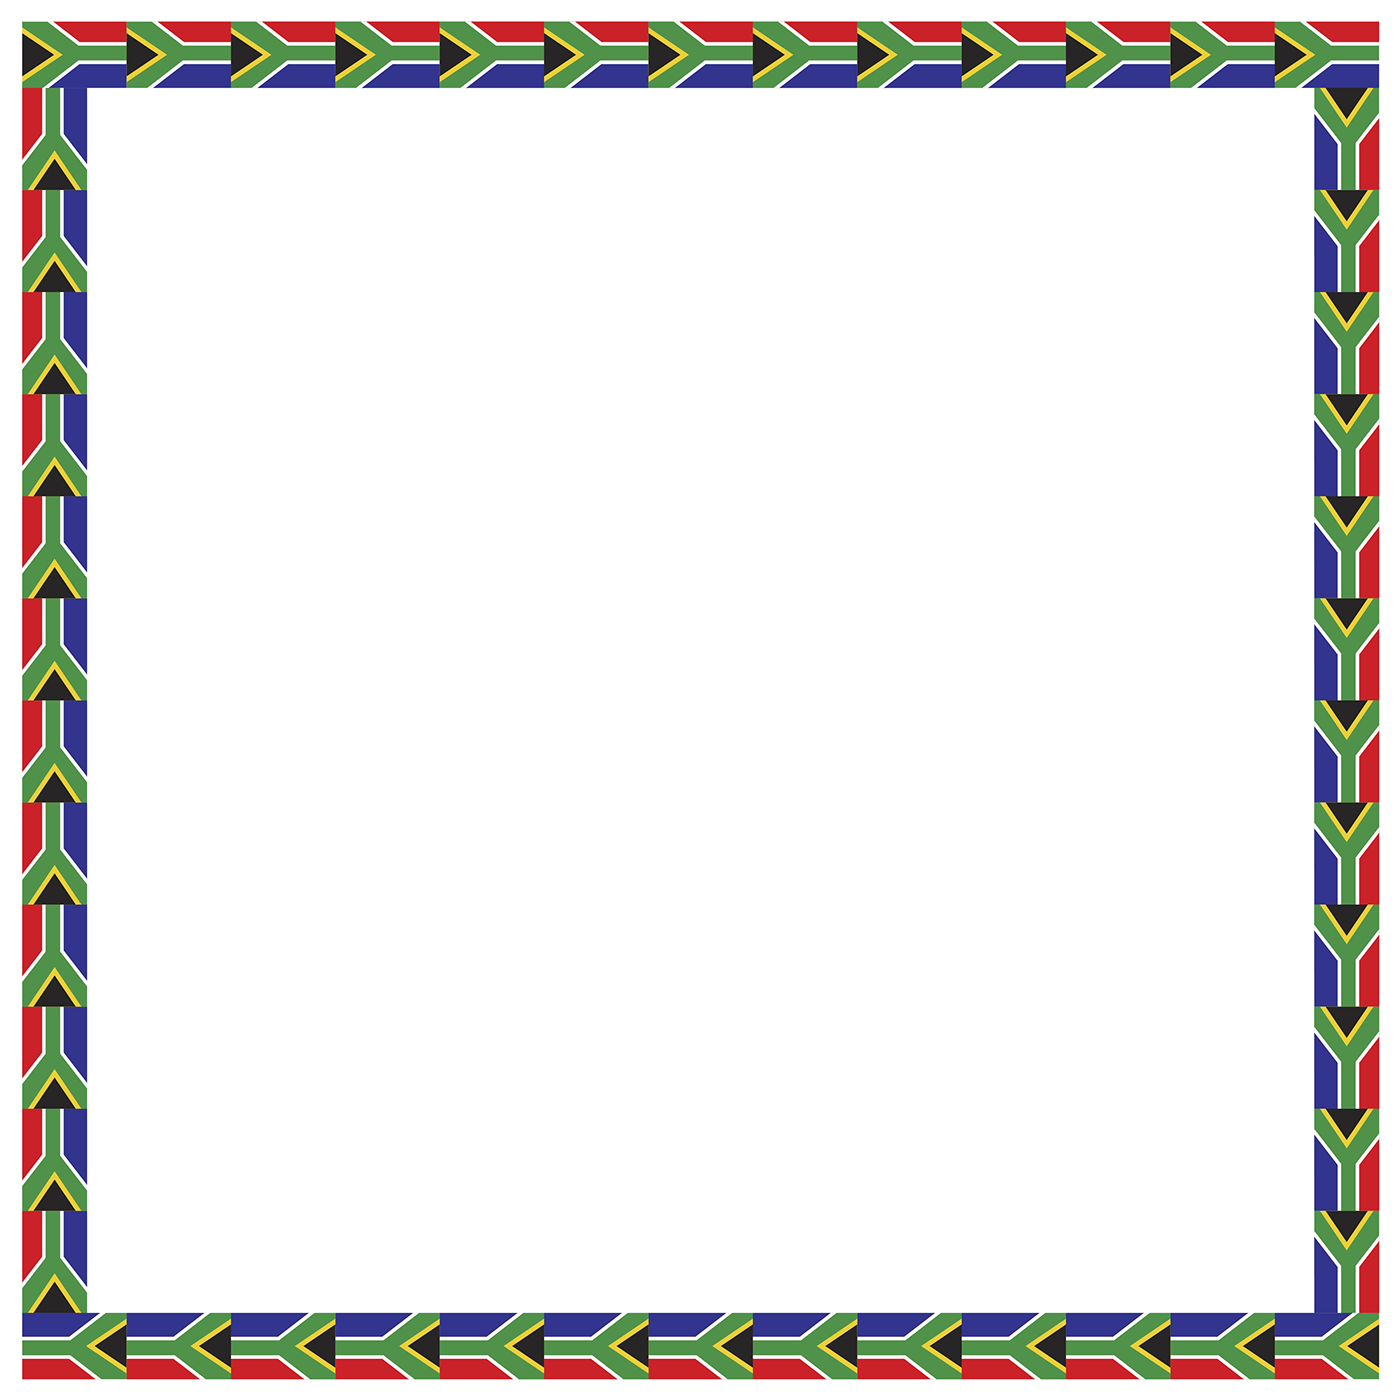 Active planet kids illustrations. African border png freeuse stock